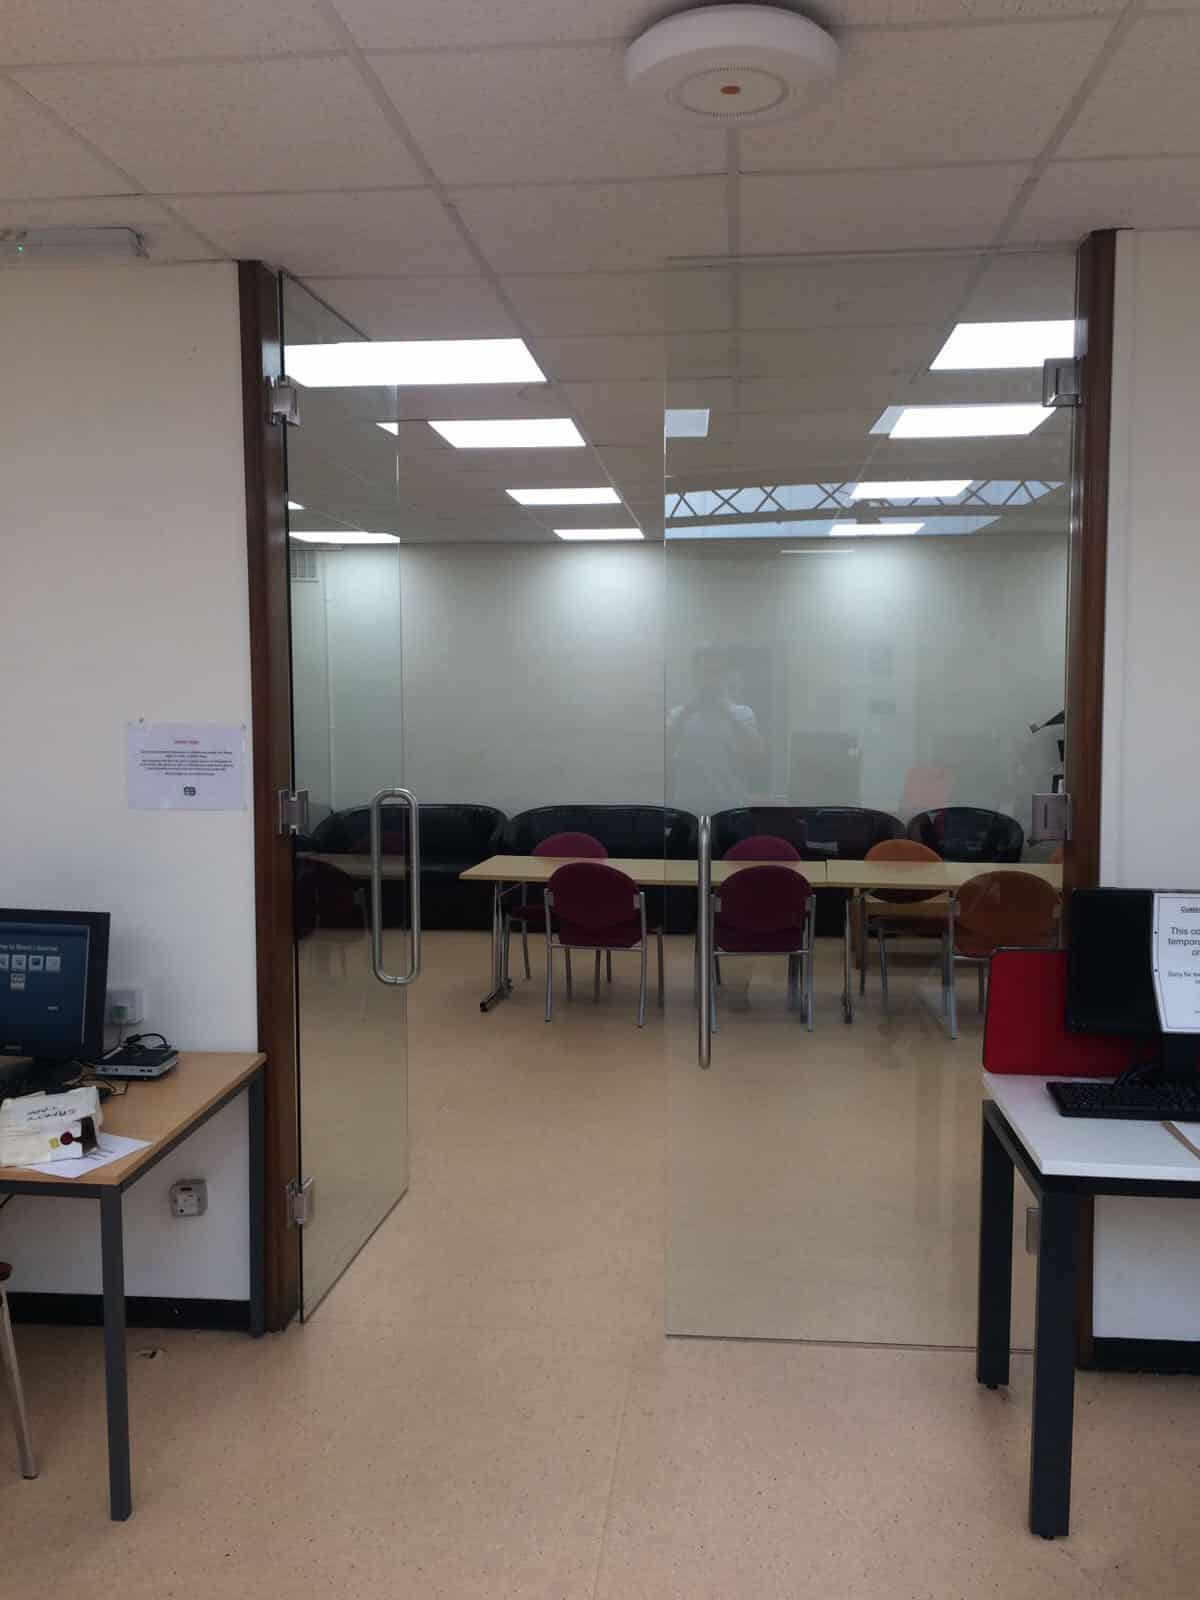 London commercial internal glass doors image 5